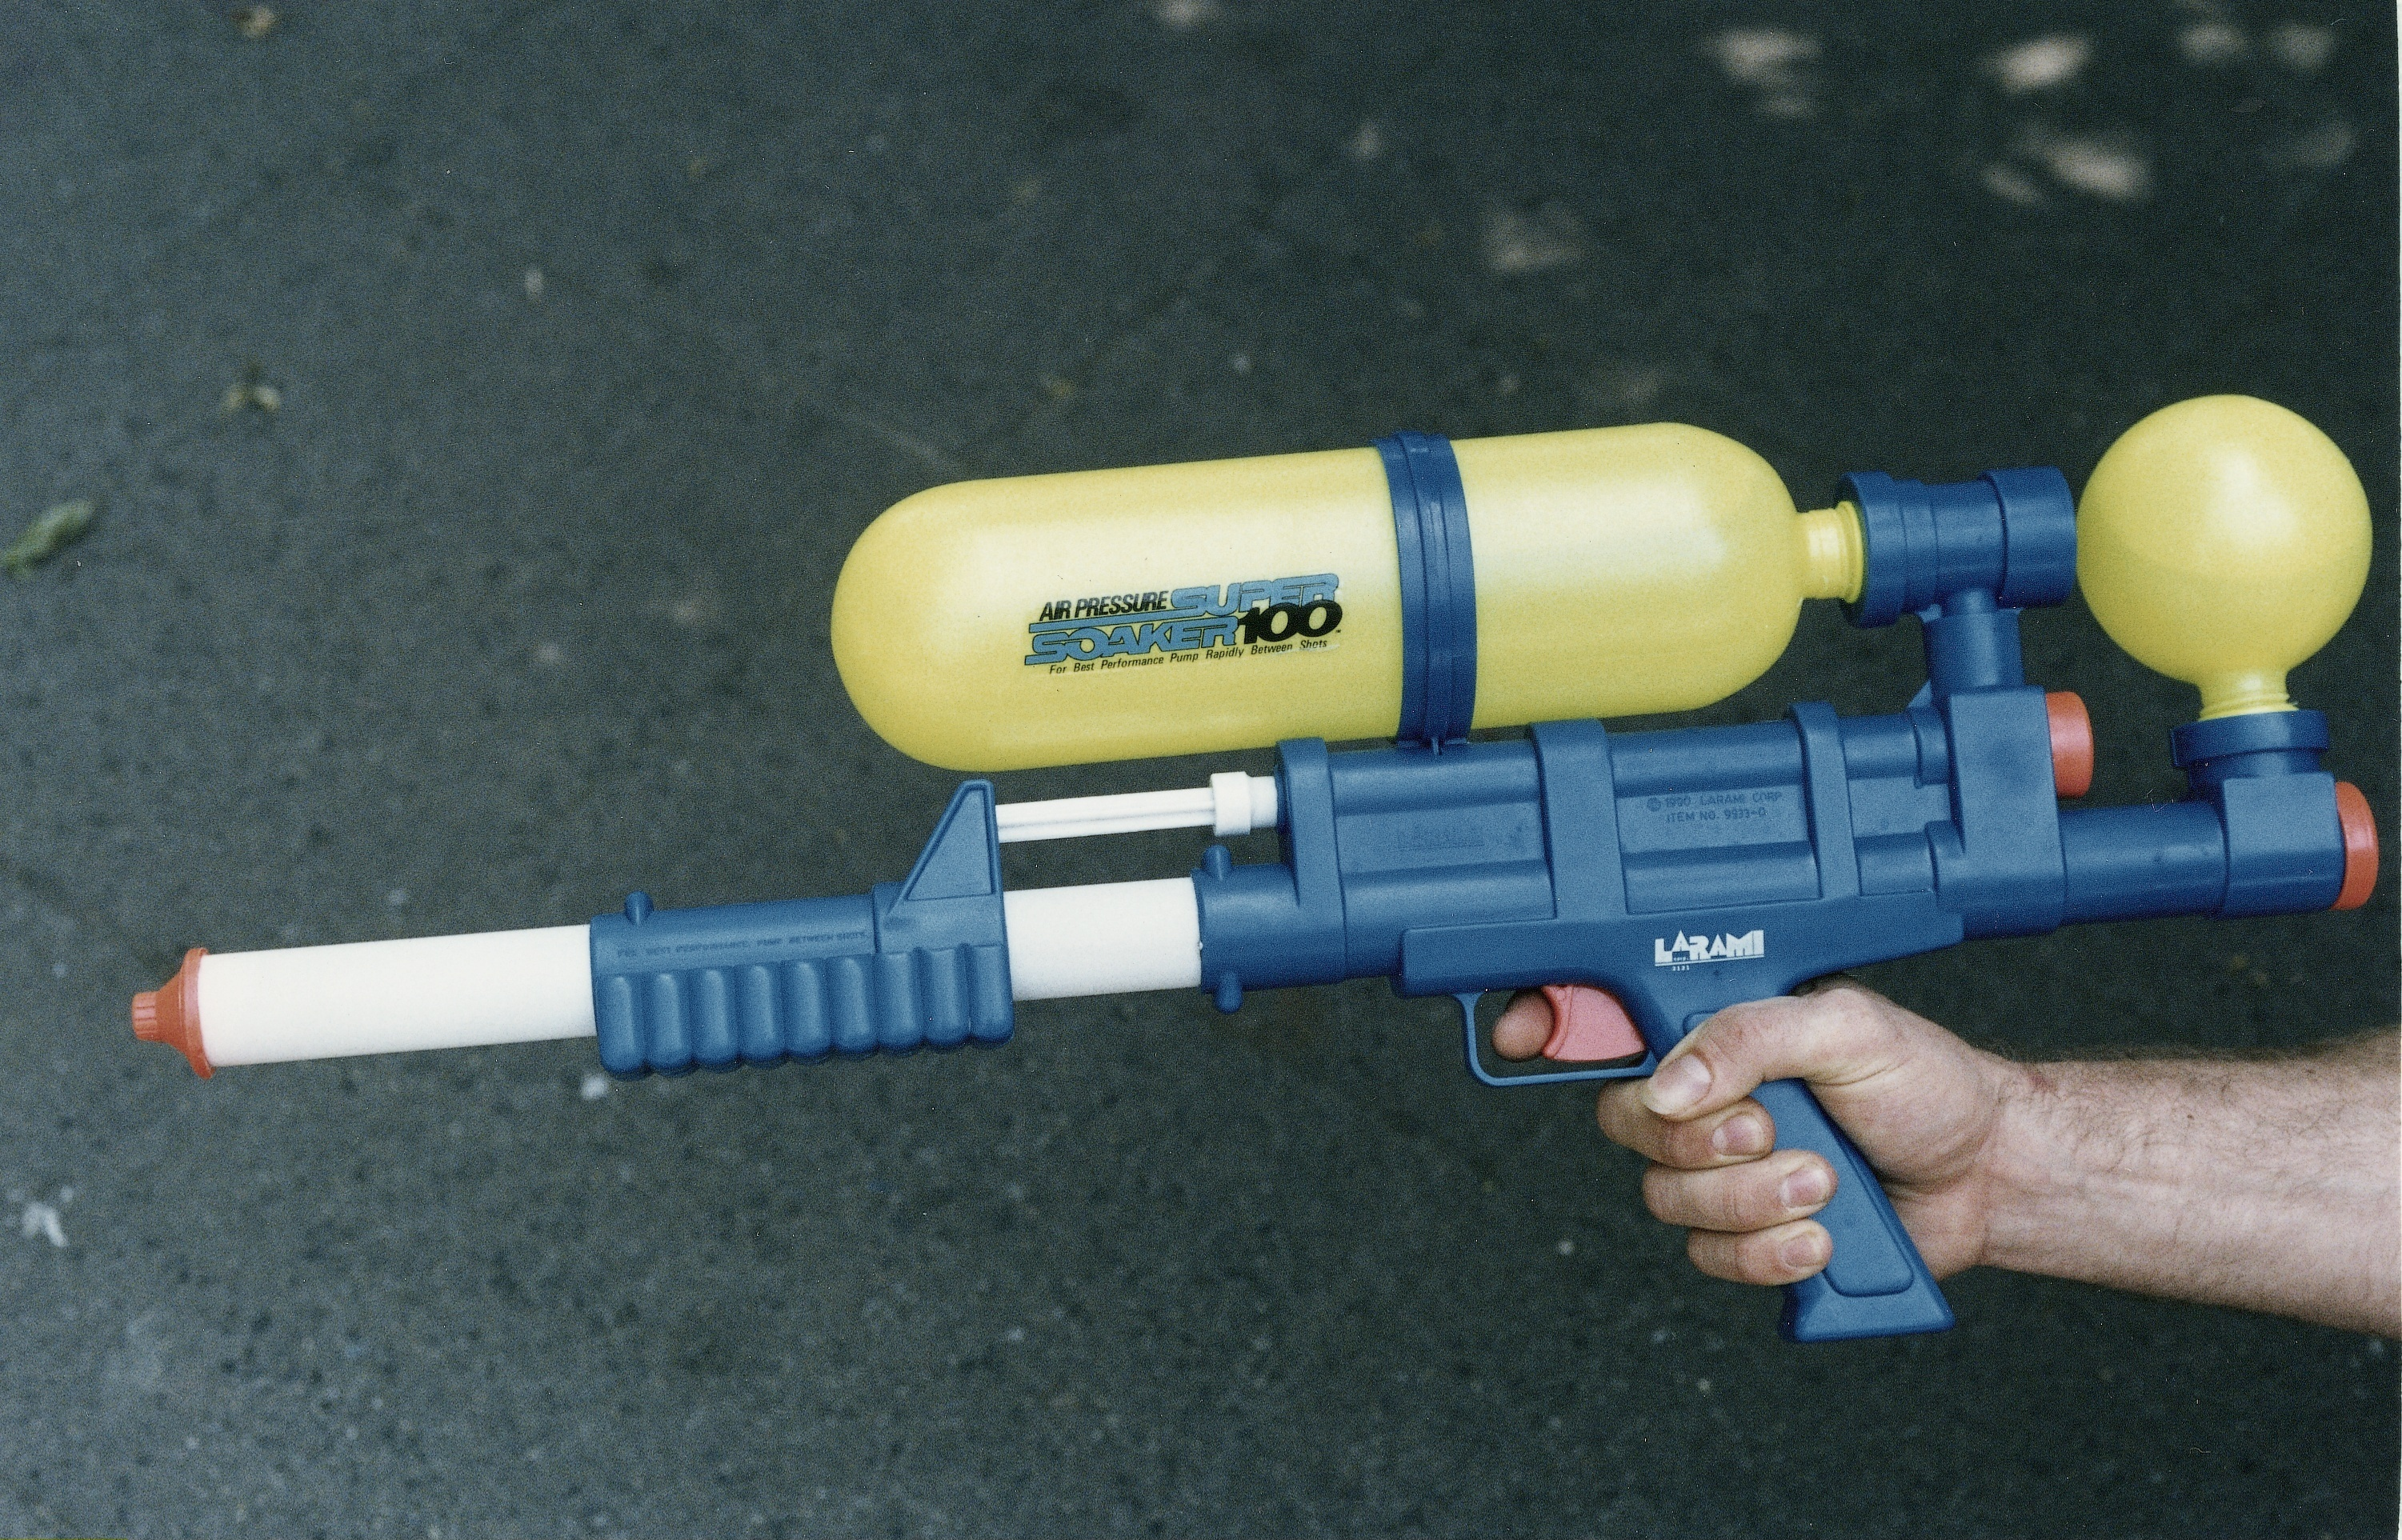 super Soaker valuable toys